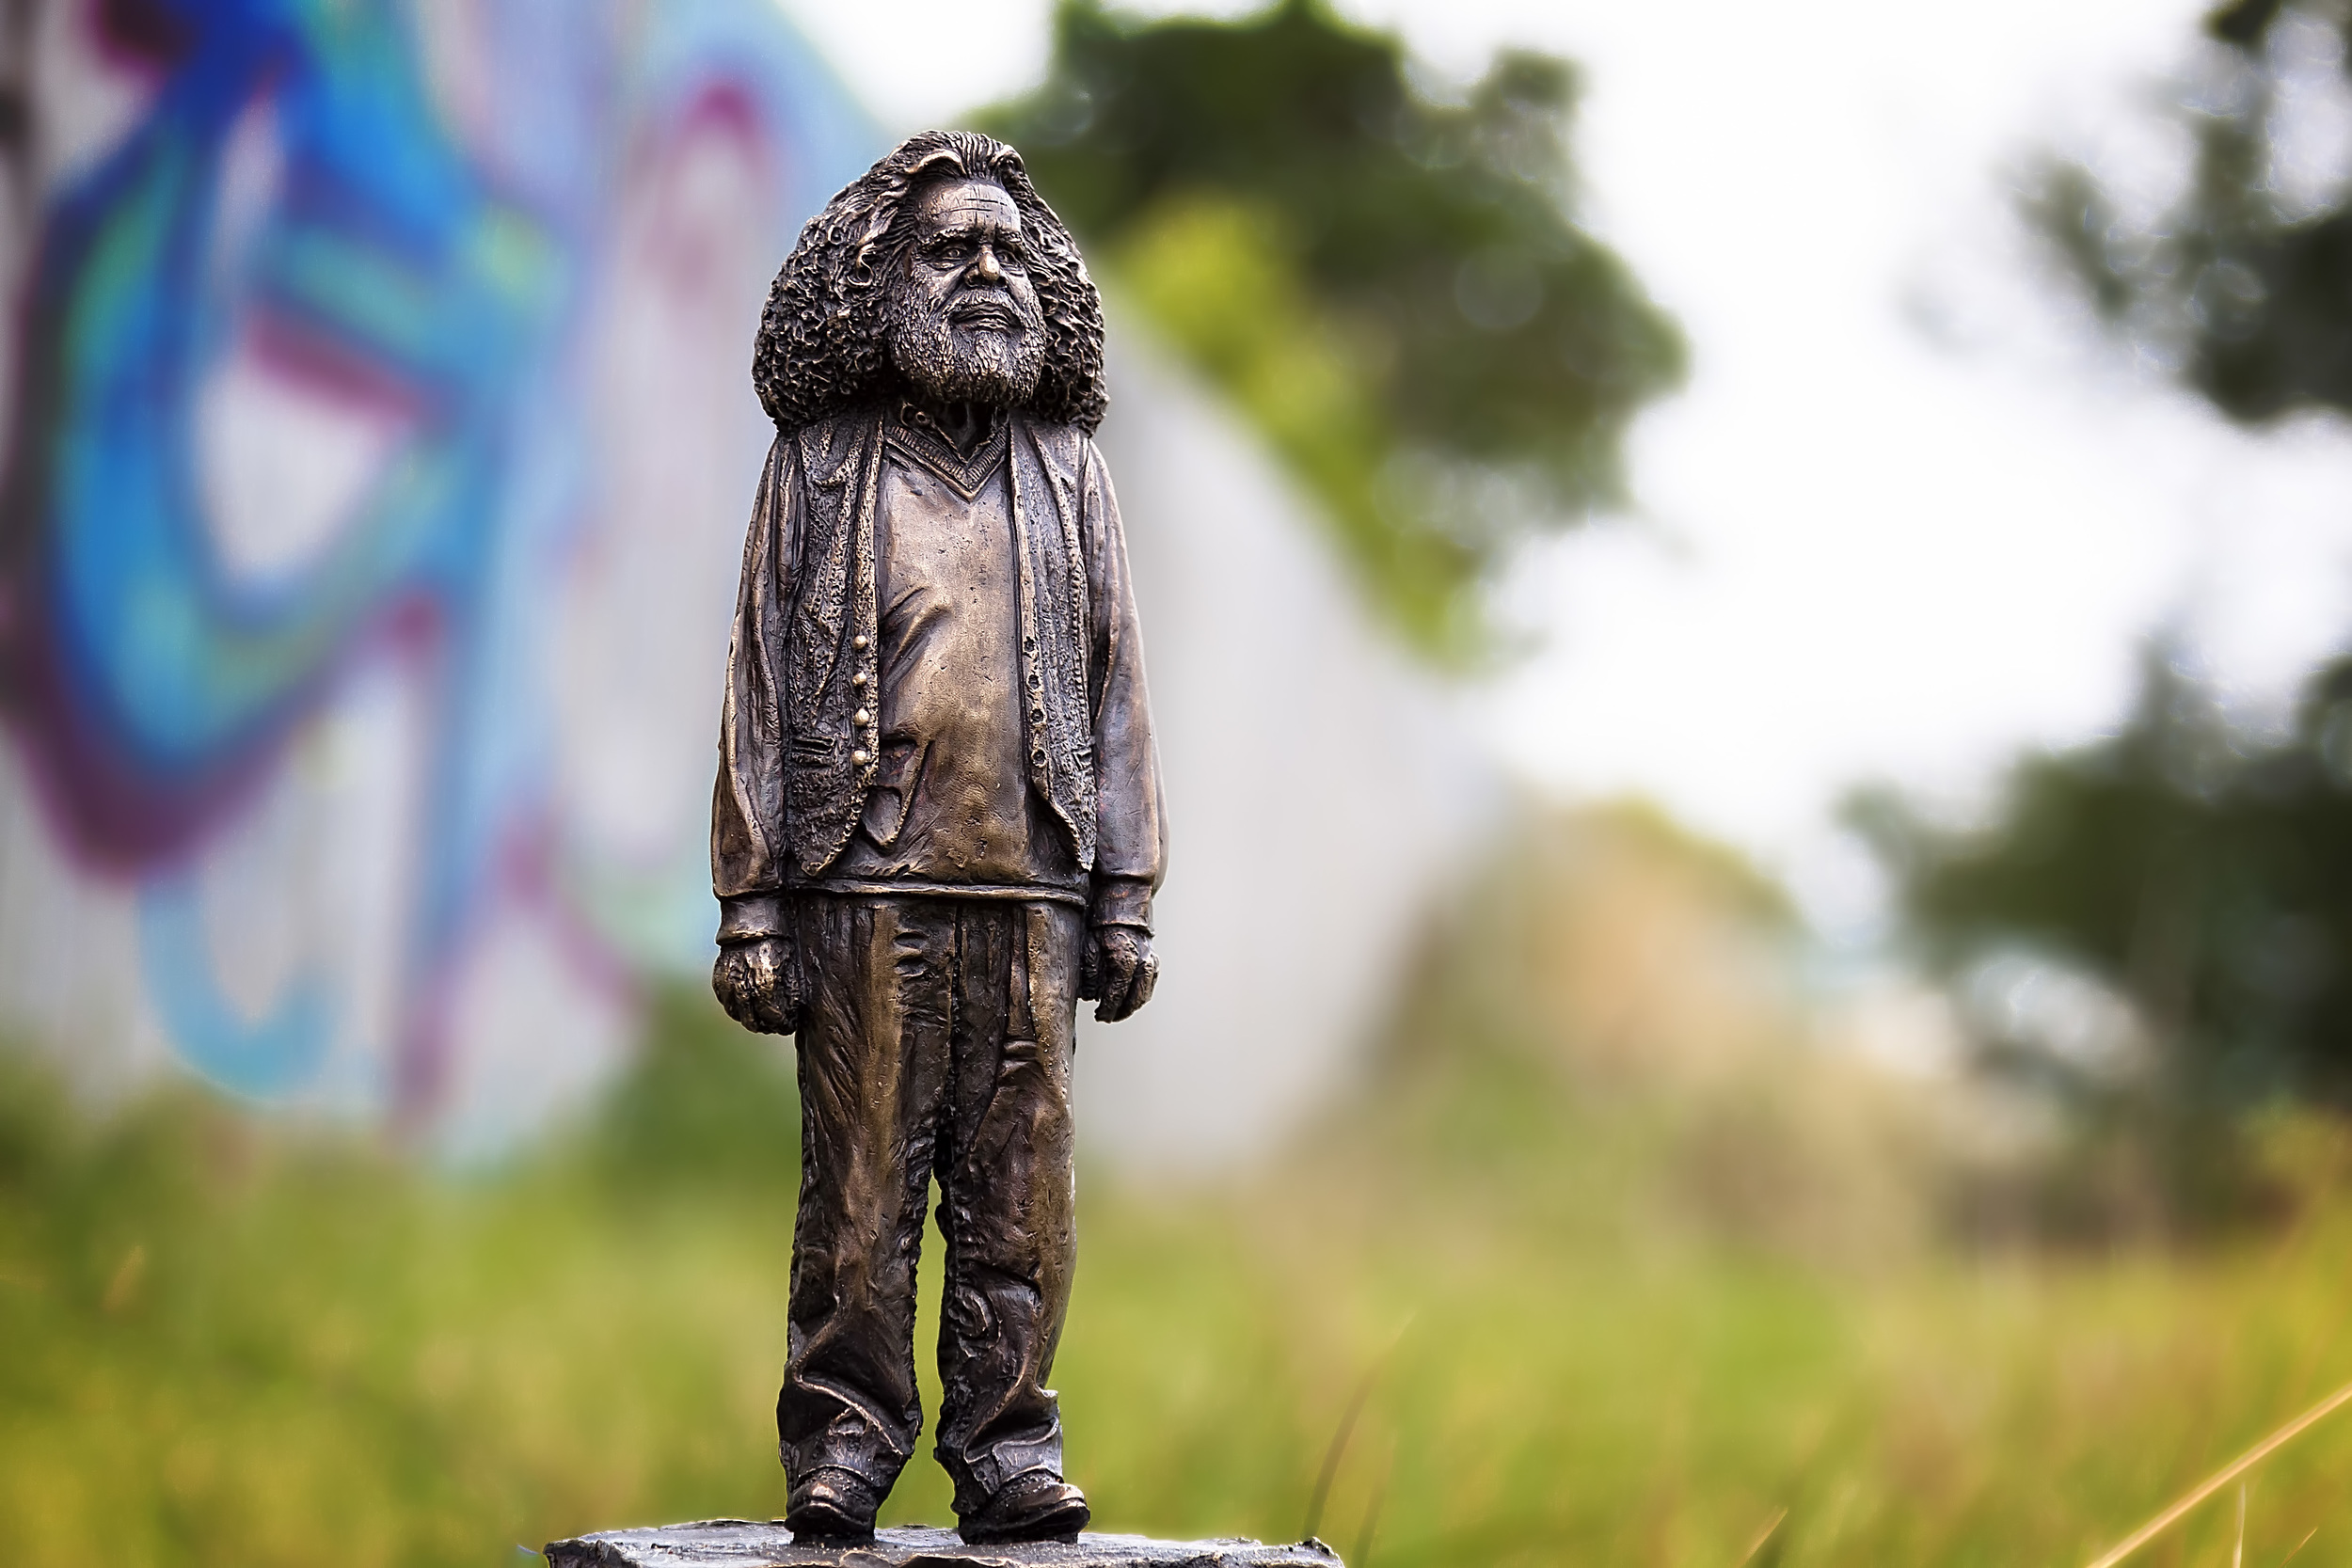 'Uncle Jack Charles, Significantly Small'